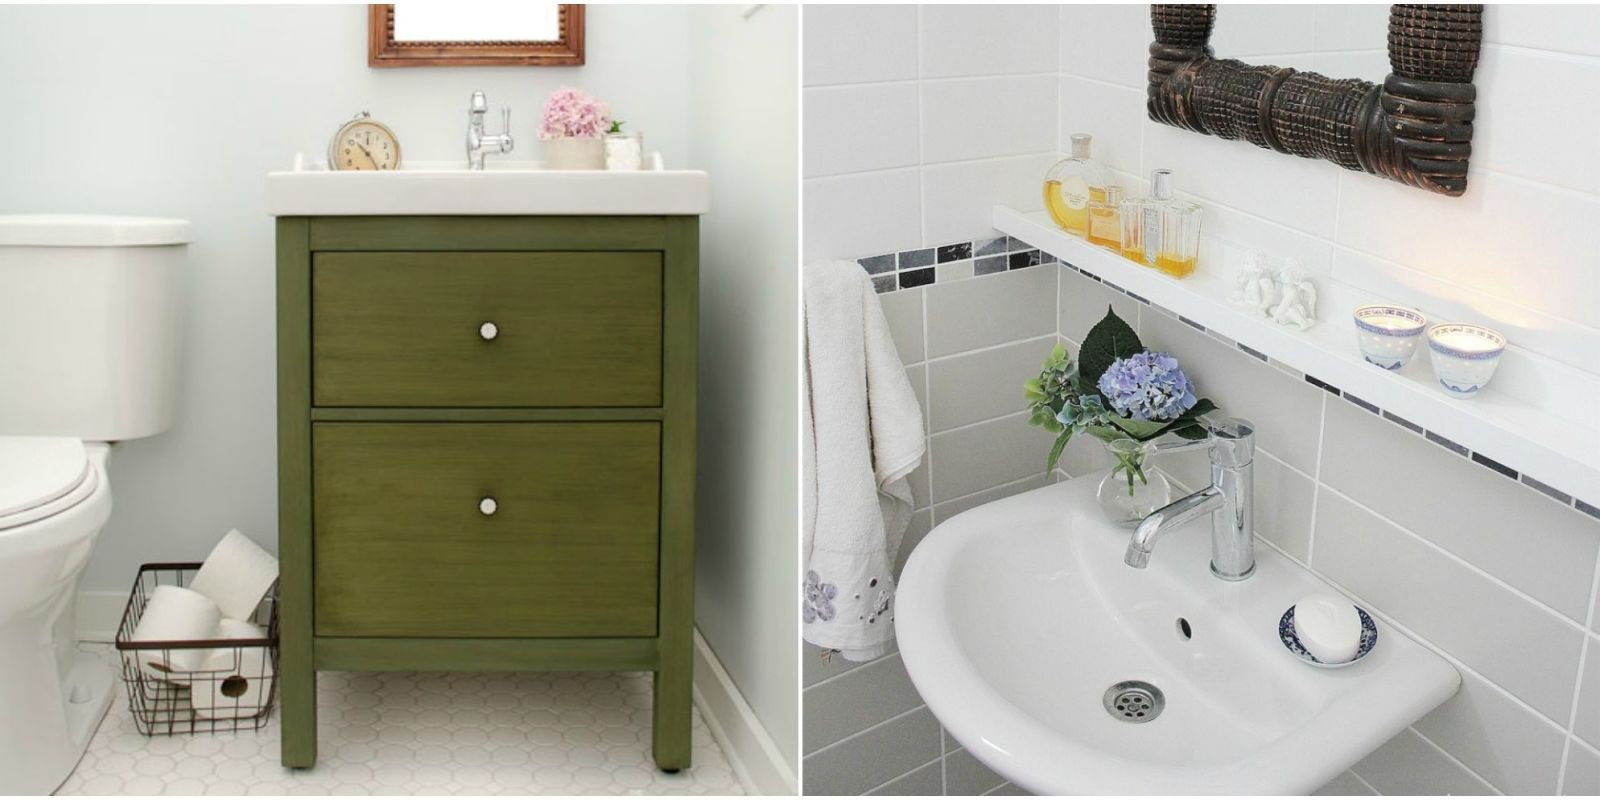 11 ikea bathroom hacks new uses for ikea items in the for Ikea bathroom design